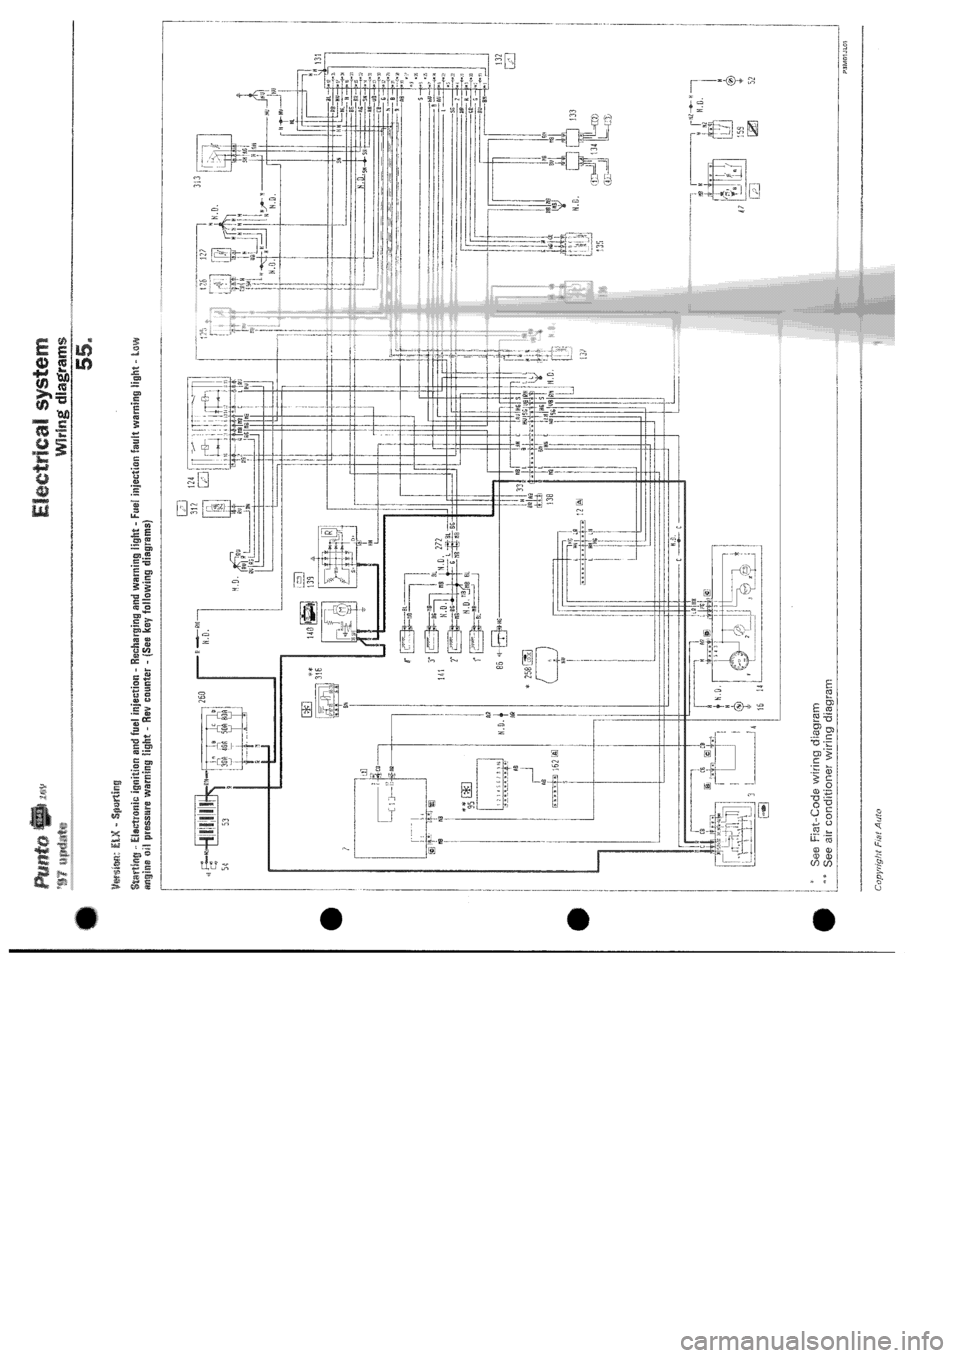 Fiat Doblo Wiring Diagram Manual : 32 Wiring Diagram